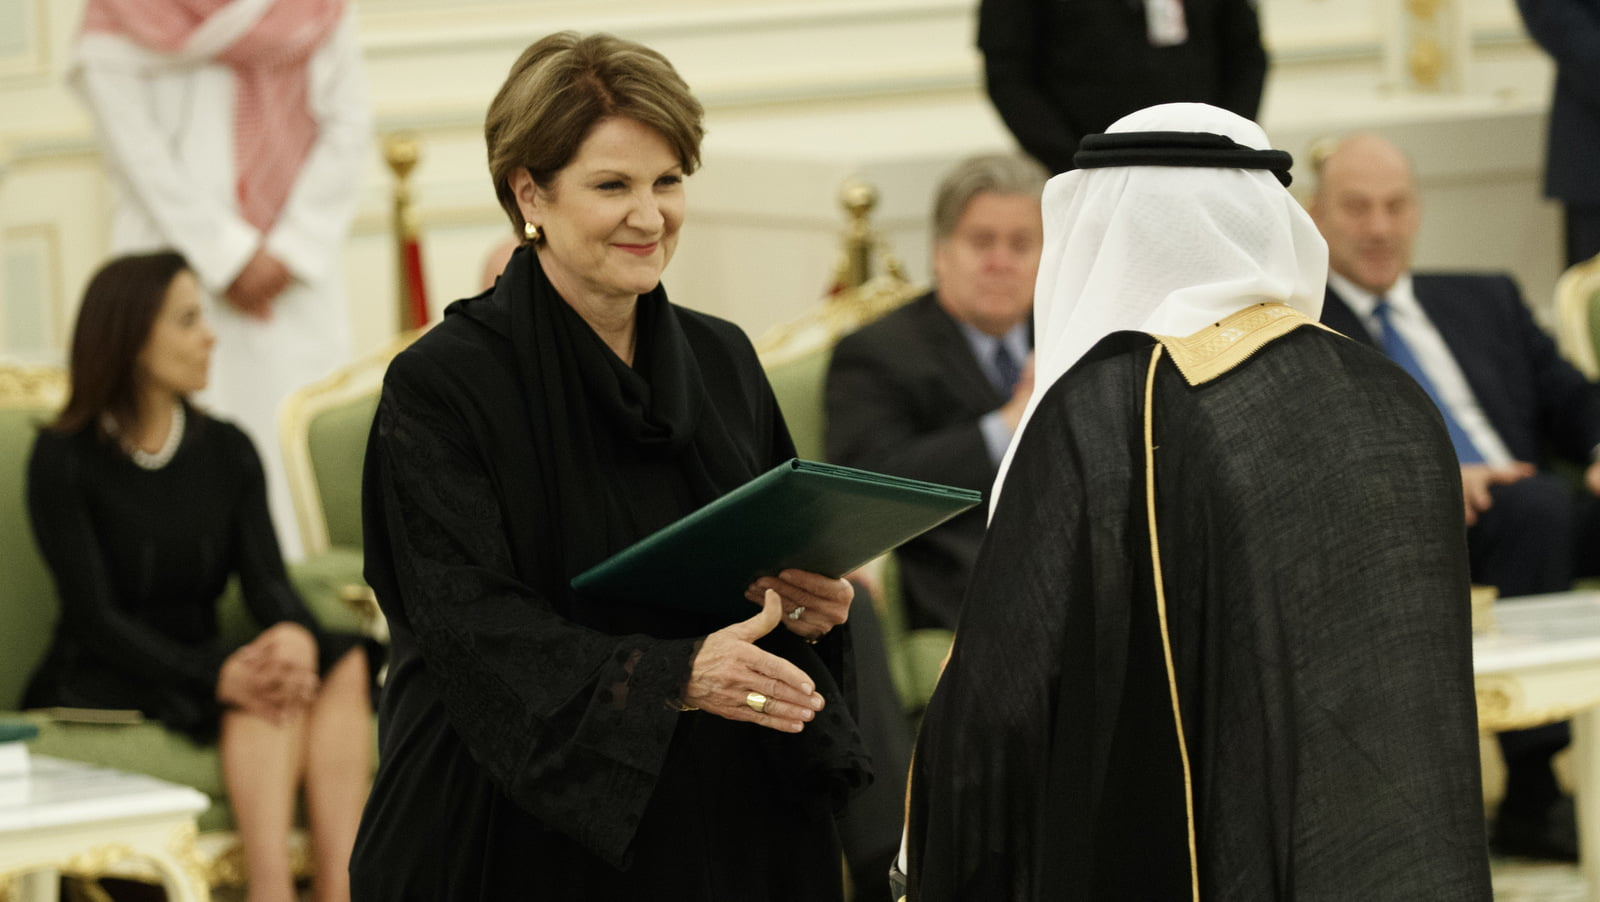 Lockheed Martin CEO Marillyn Hewson participates in a signing ceremony between President Trump and Saudi King Salam, May 20, 2017, in Riyadh. Evan Vucci | AP